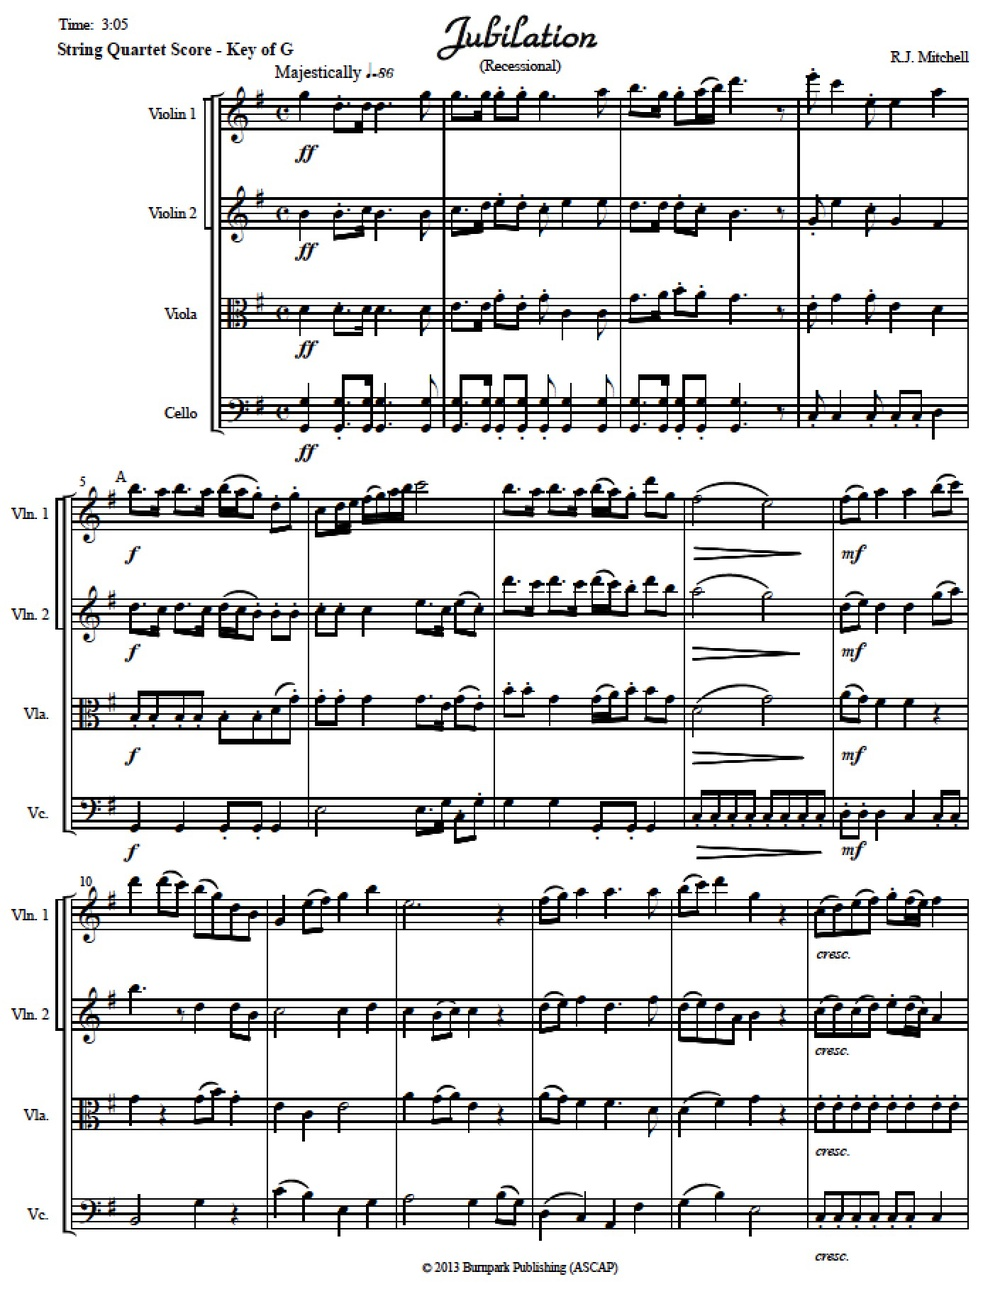 Jubilation in G - TP, Score and Parts.jpg